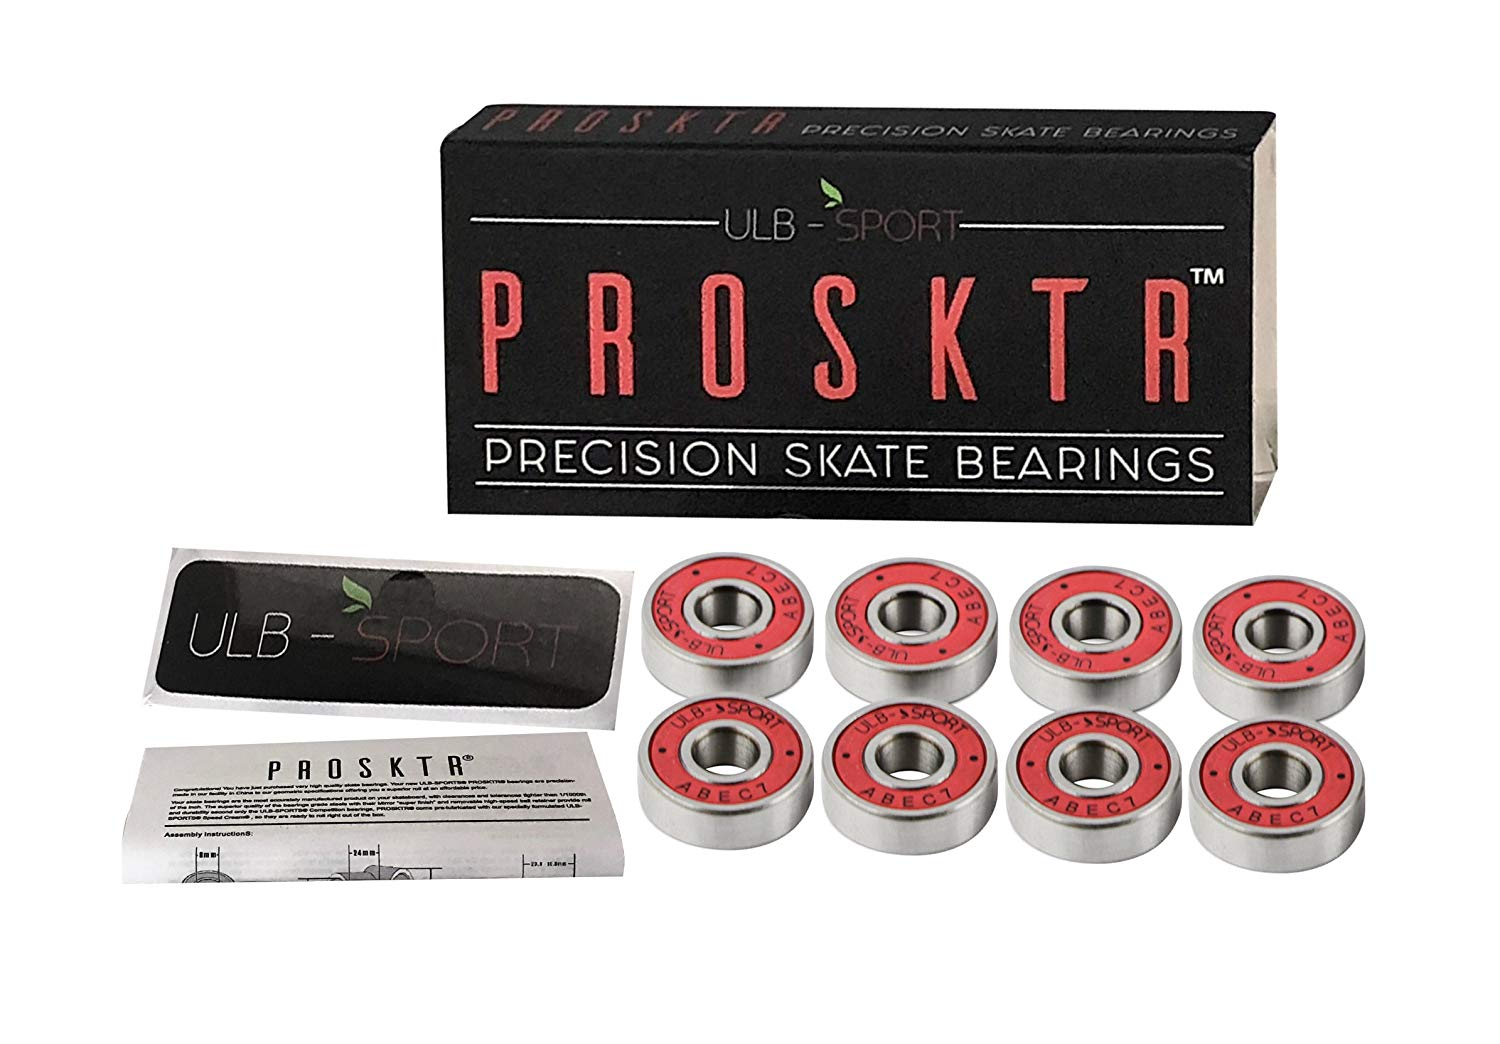 PROSKTR 7mm Skate Wheel Bearings – Set of 8 ABEC 7 Rating Pre-Lubricated Bearings – Ideal as Skateboard, Longboard, Scooter, Hamboard, Spinner Bearings – Smooth Rolling, Faster Speed, Sturdy Build